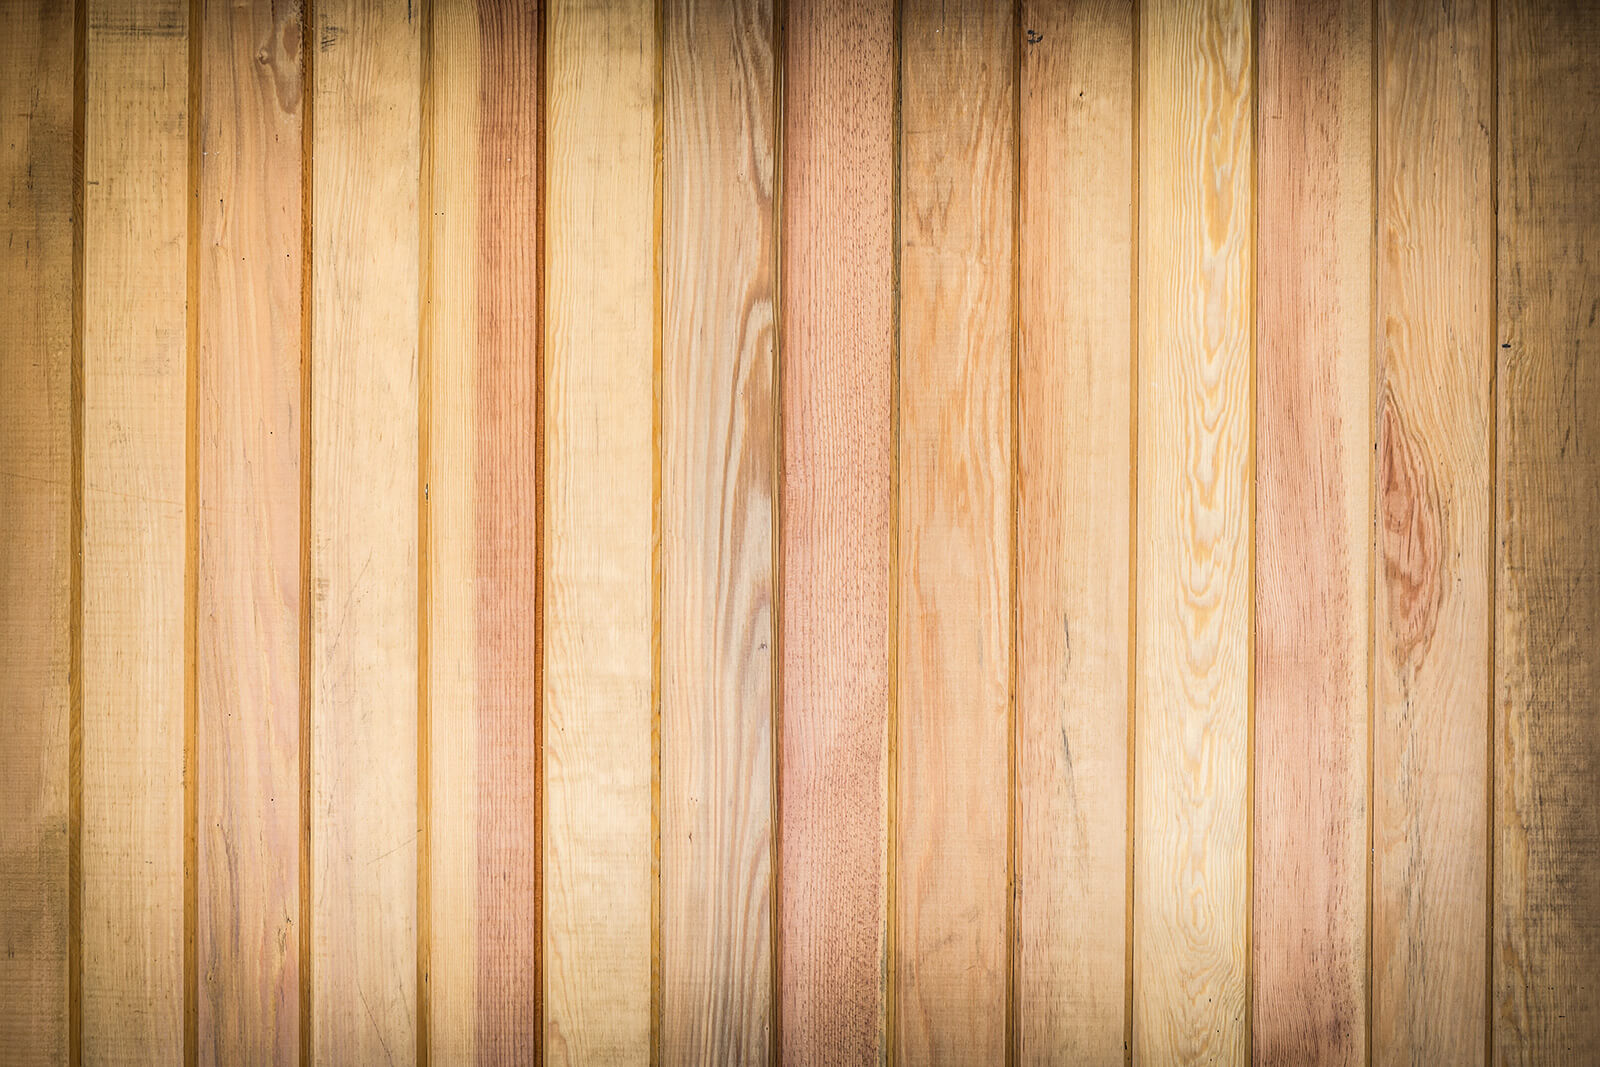 Vintage wood paneling background